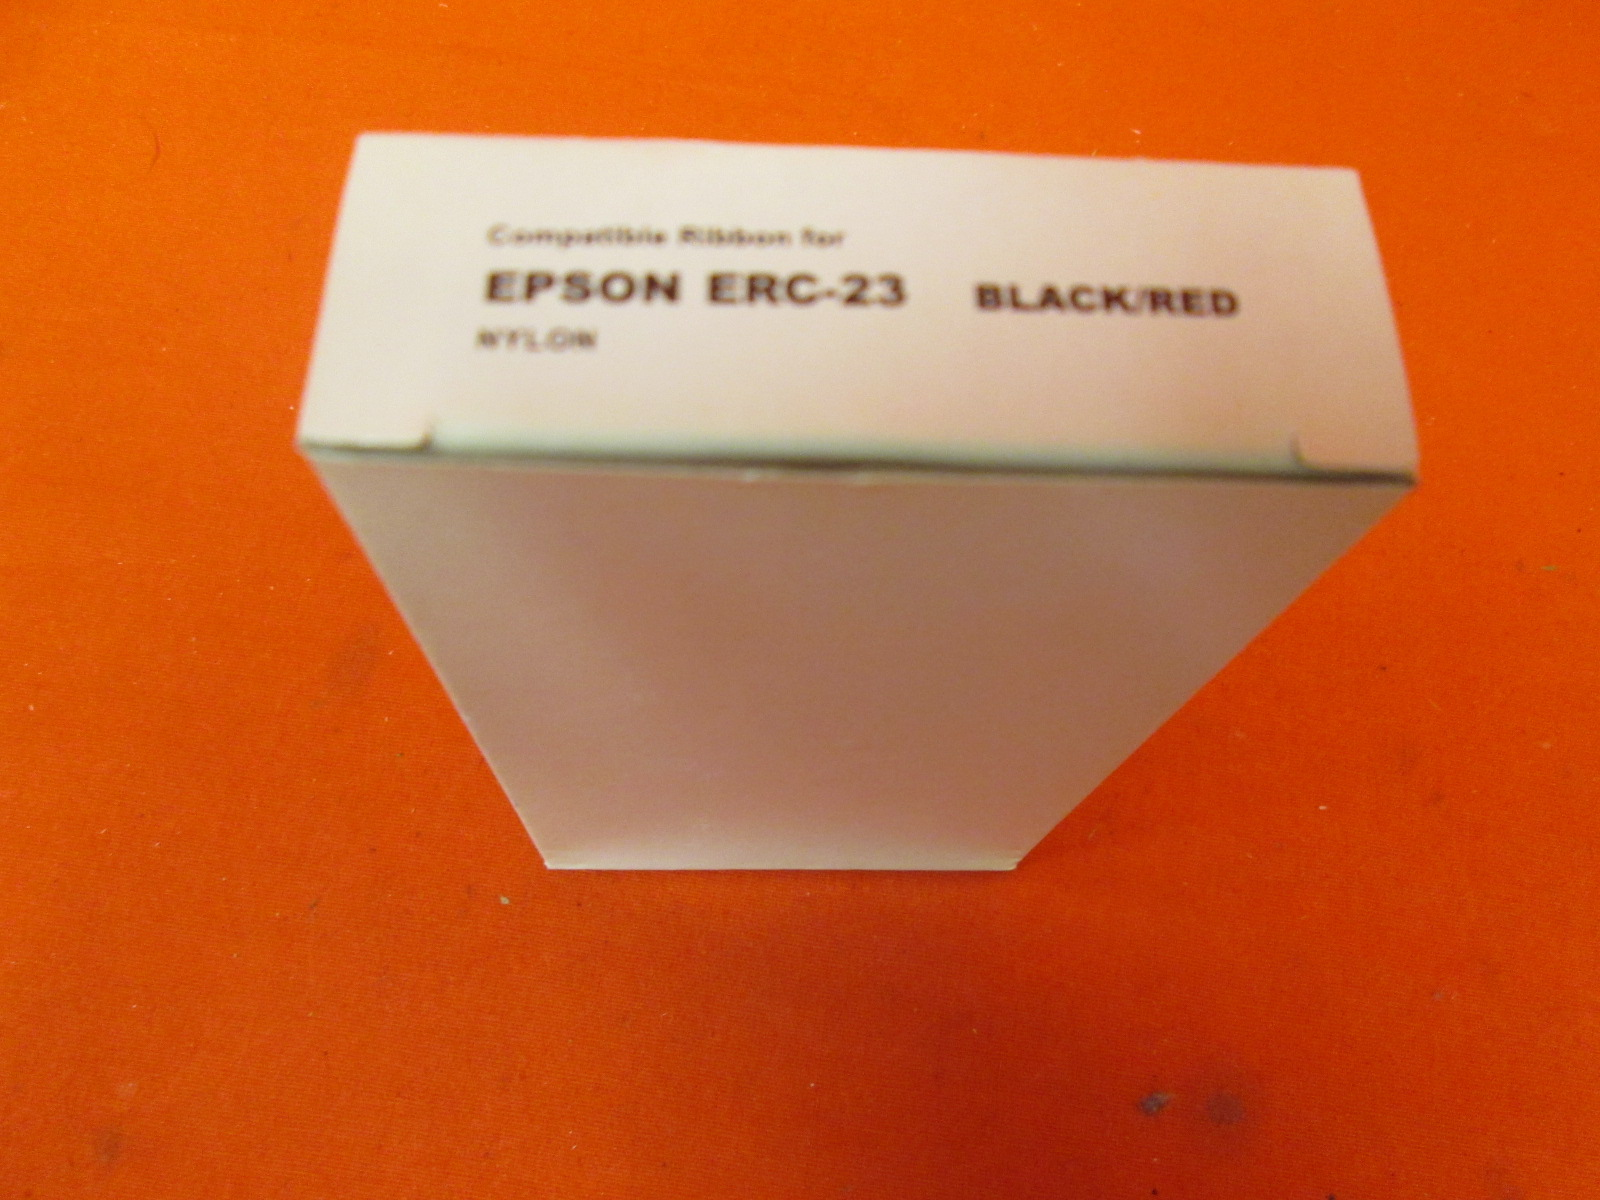 Image 1 of Epson Compatible ERC-23B/R Black/red Printer Ribbon Ink